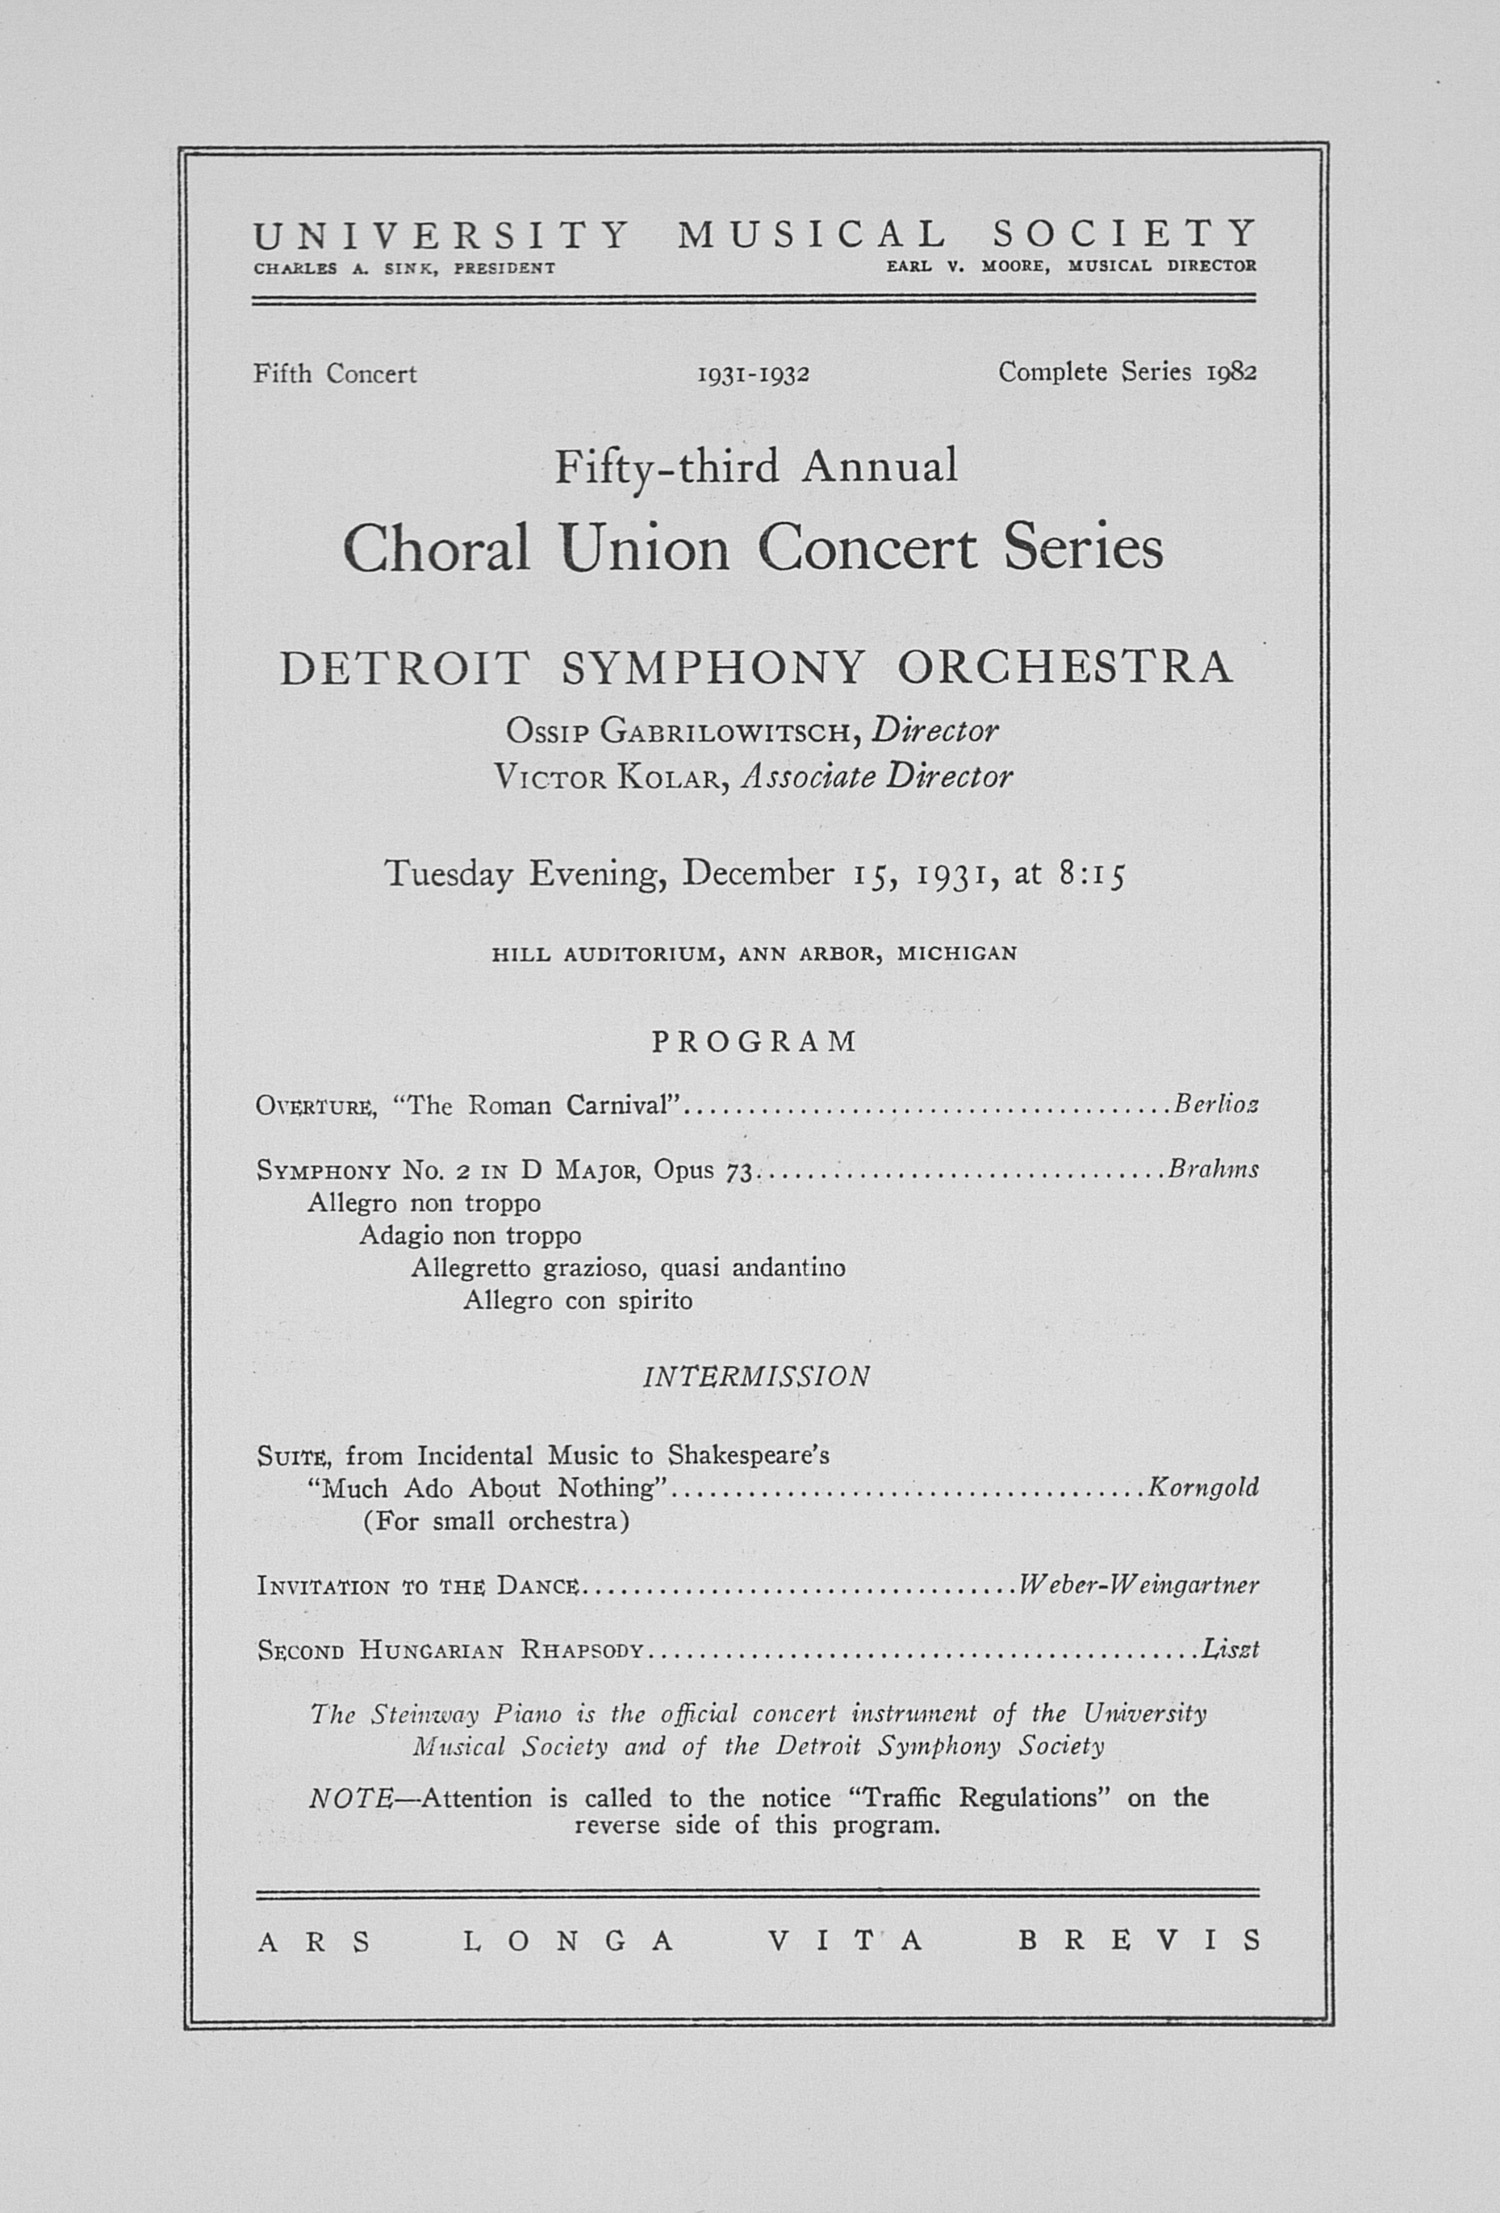 UMS Concert Program, December 15, 1931: Fifty-third Annual Choral Union Concert Series -- Detroit Symphony Orchestra image